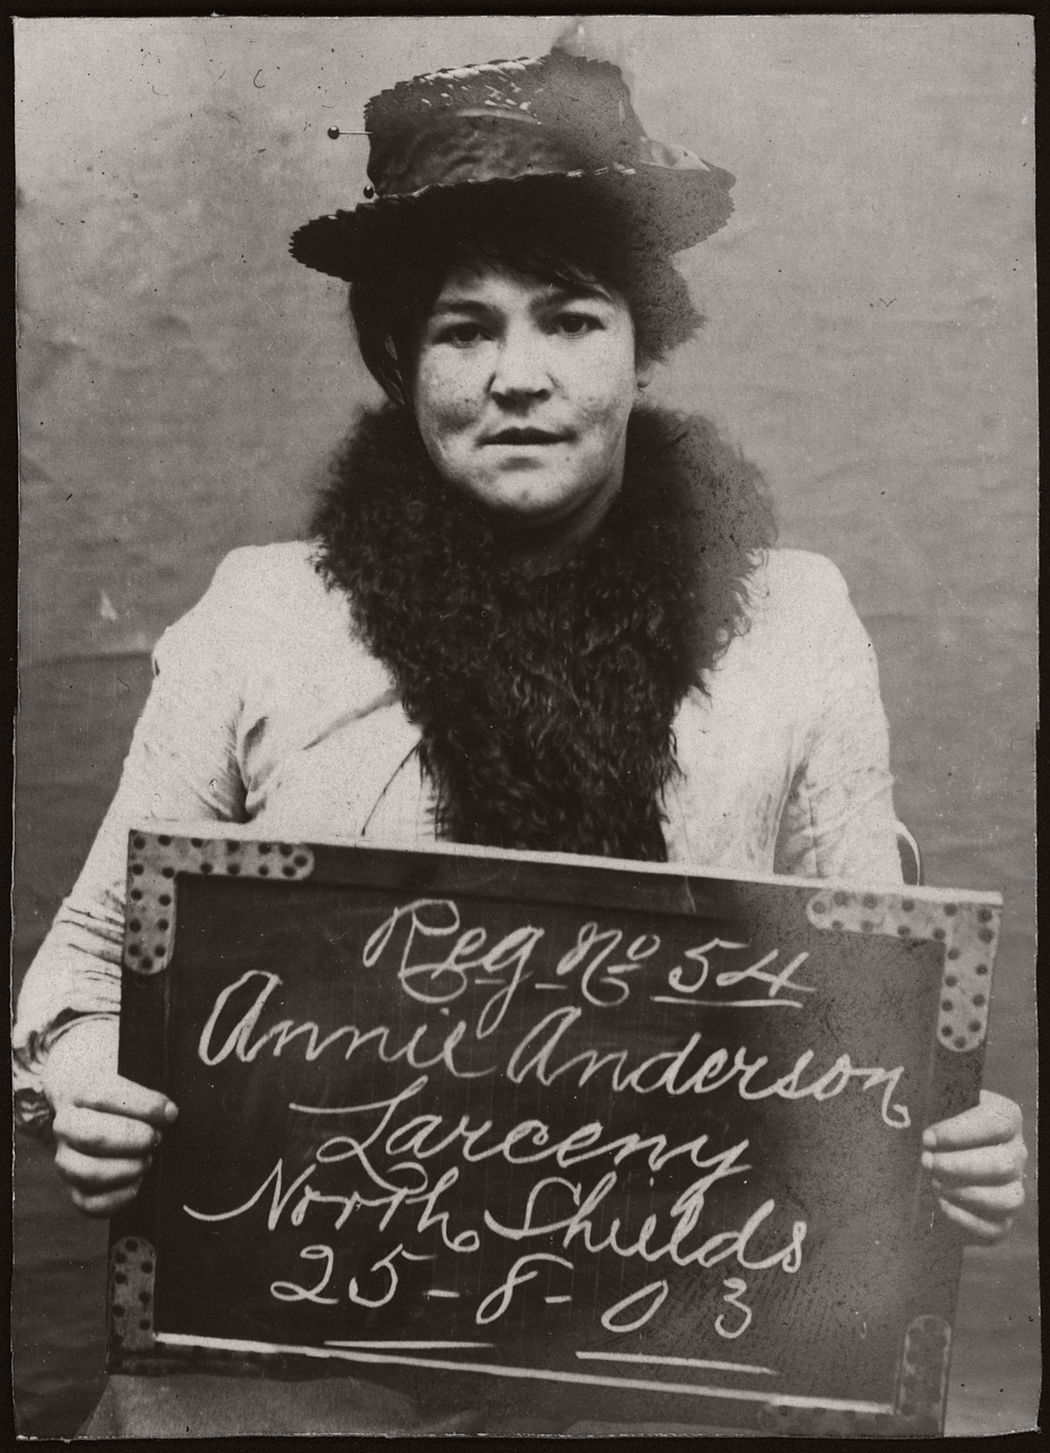 vintage-mug-shot-of-women-criminals-from-north-shields-1903-1905-11